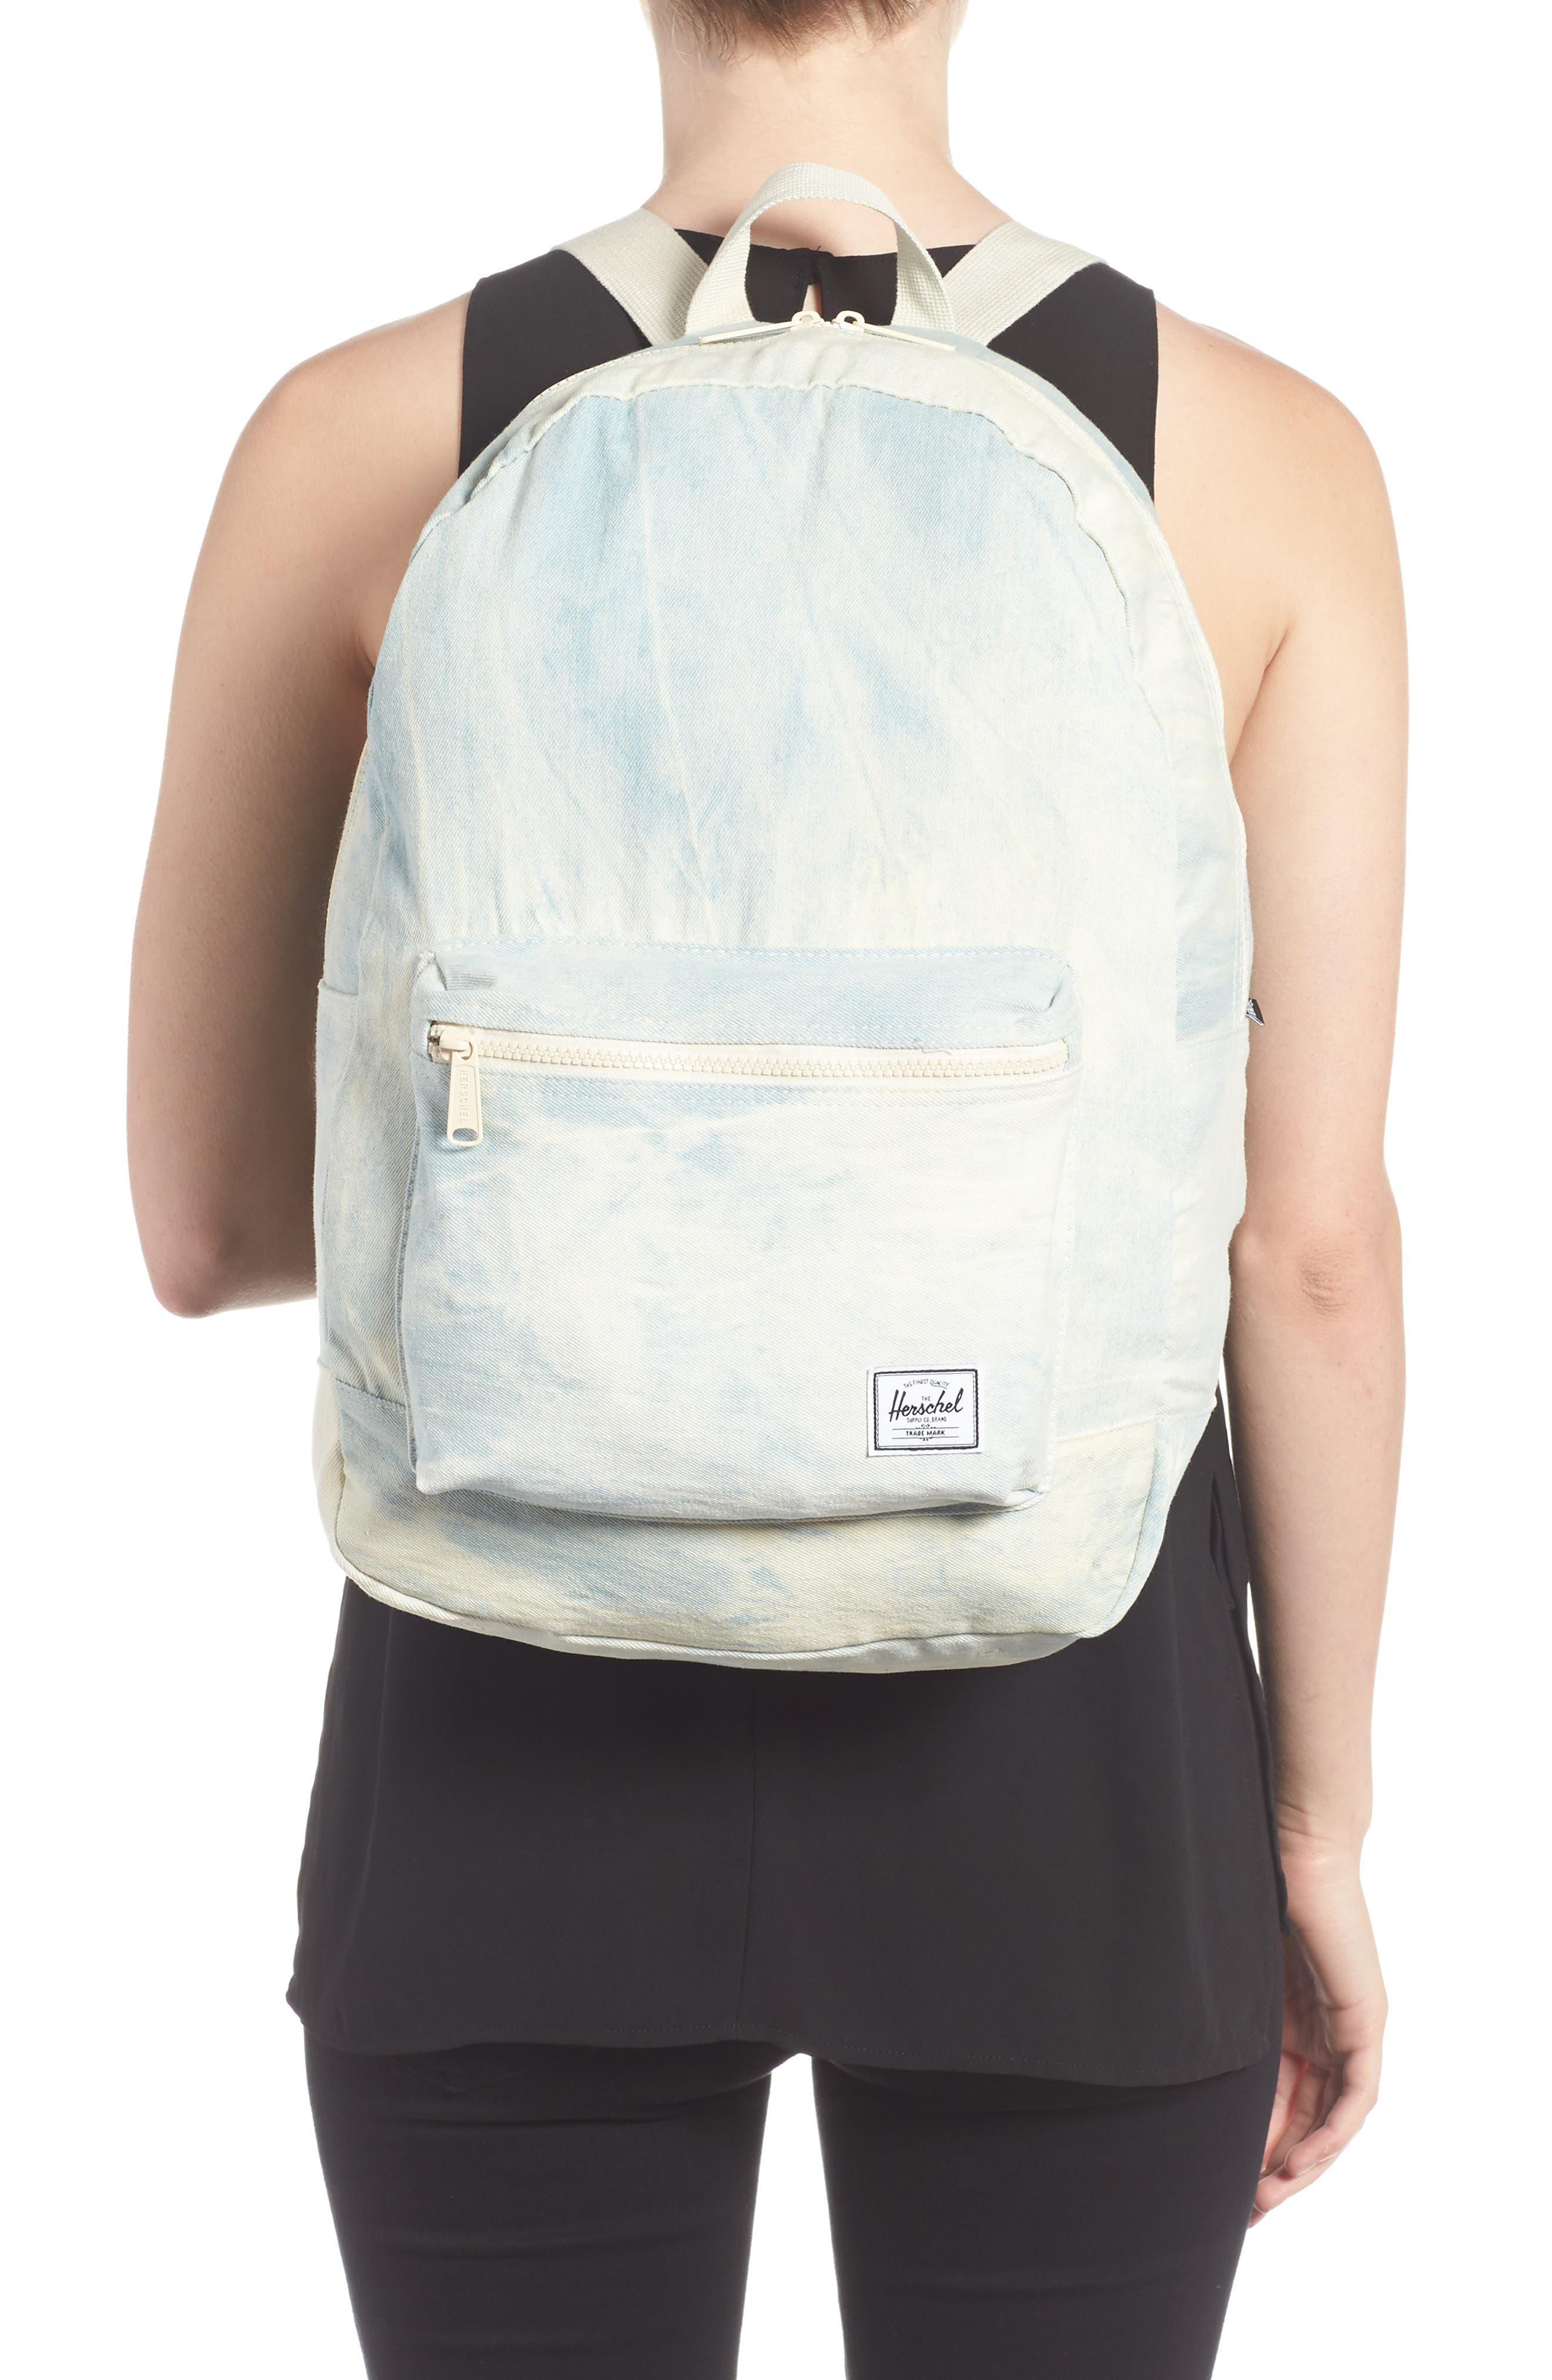 Cotton Casuals Daypack Backpack,                             Alternate thumbnail 17, color,